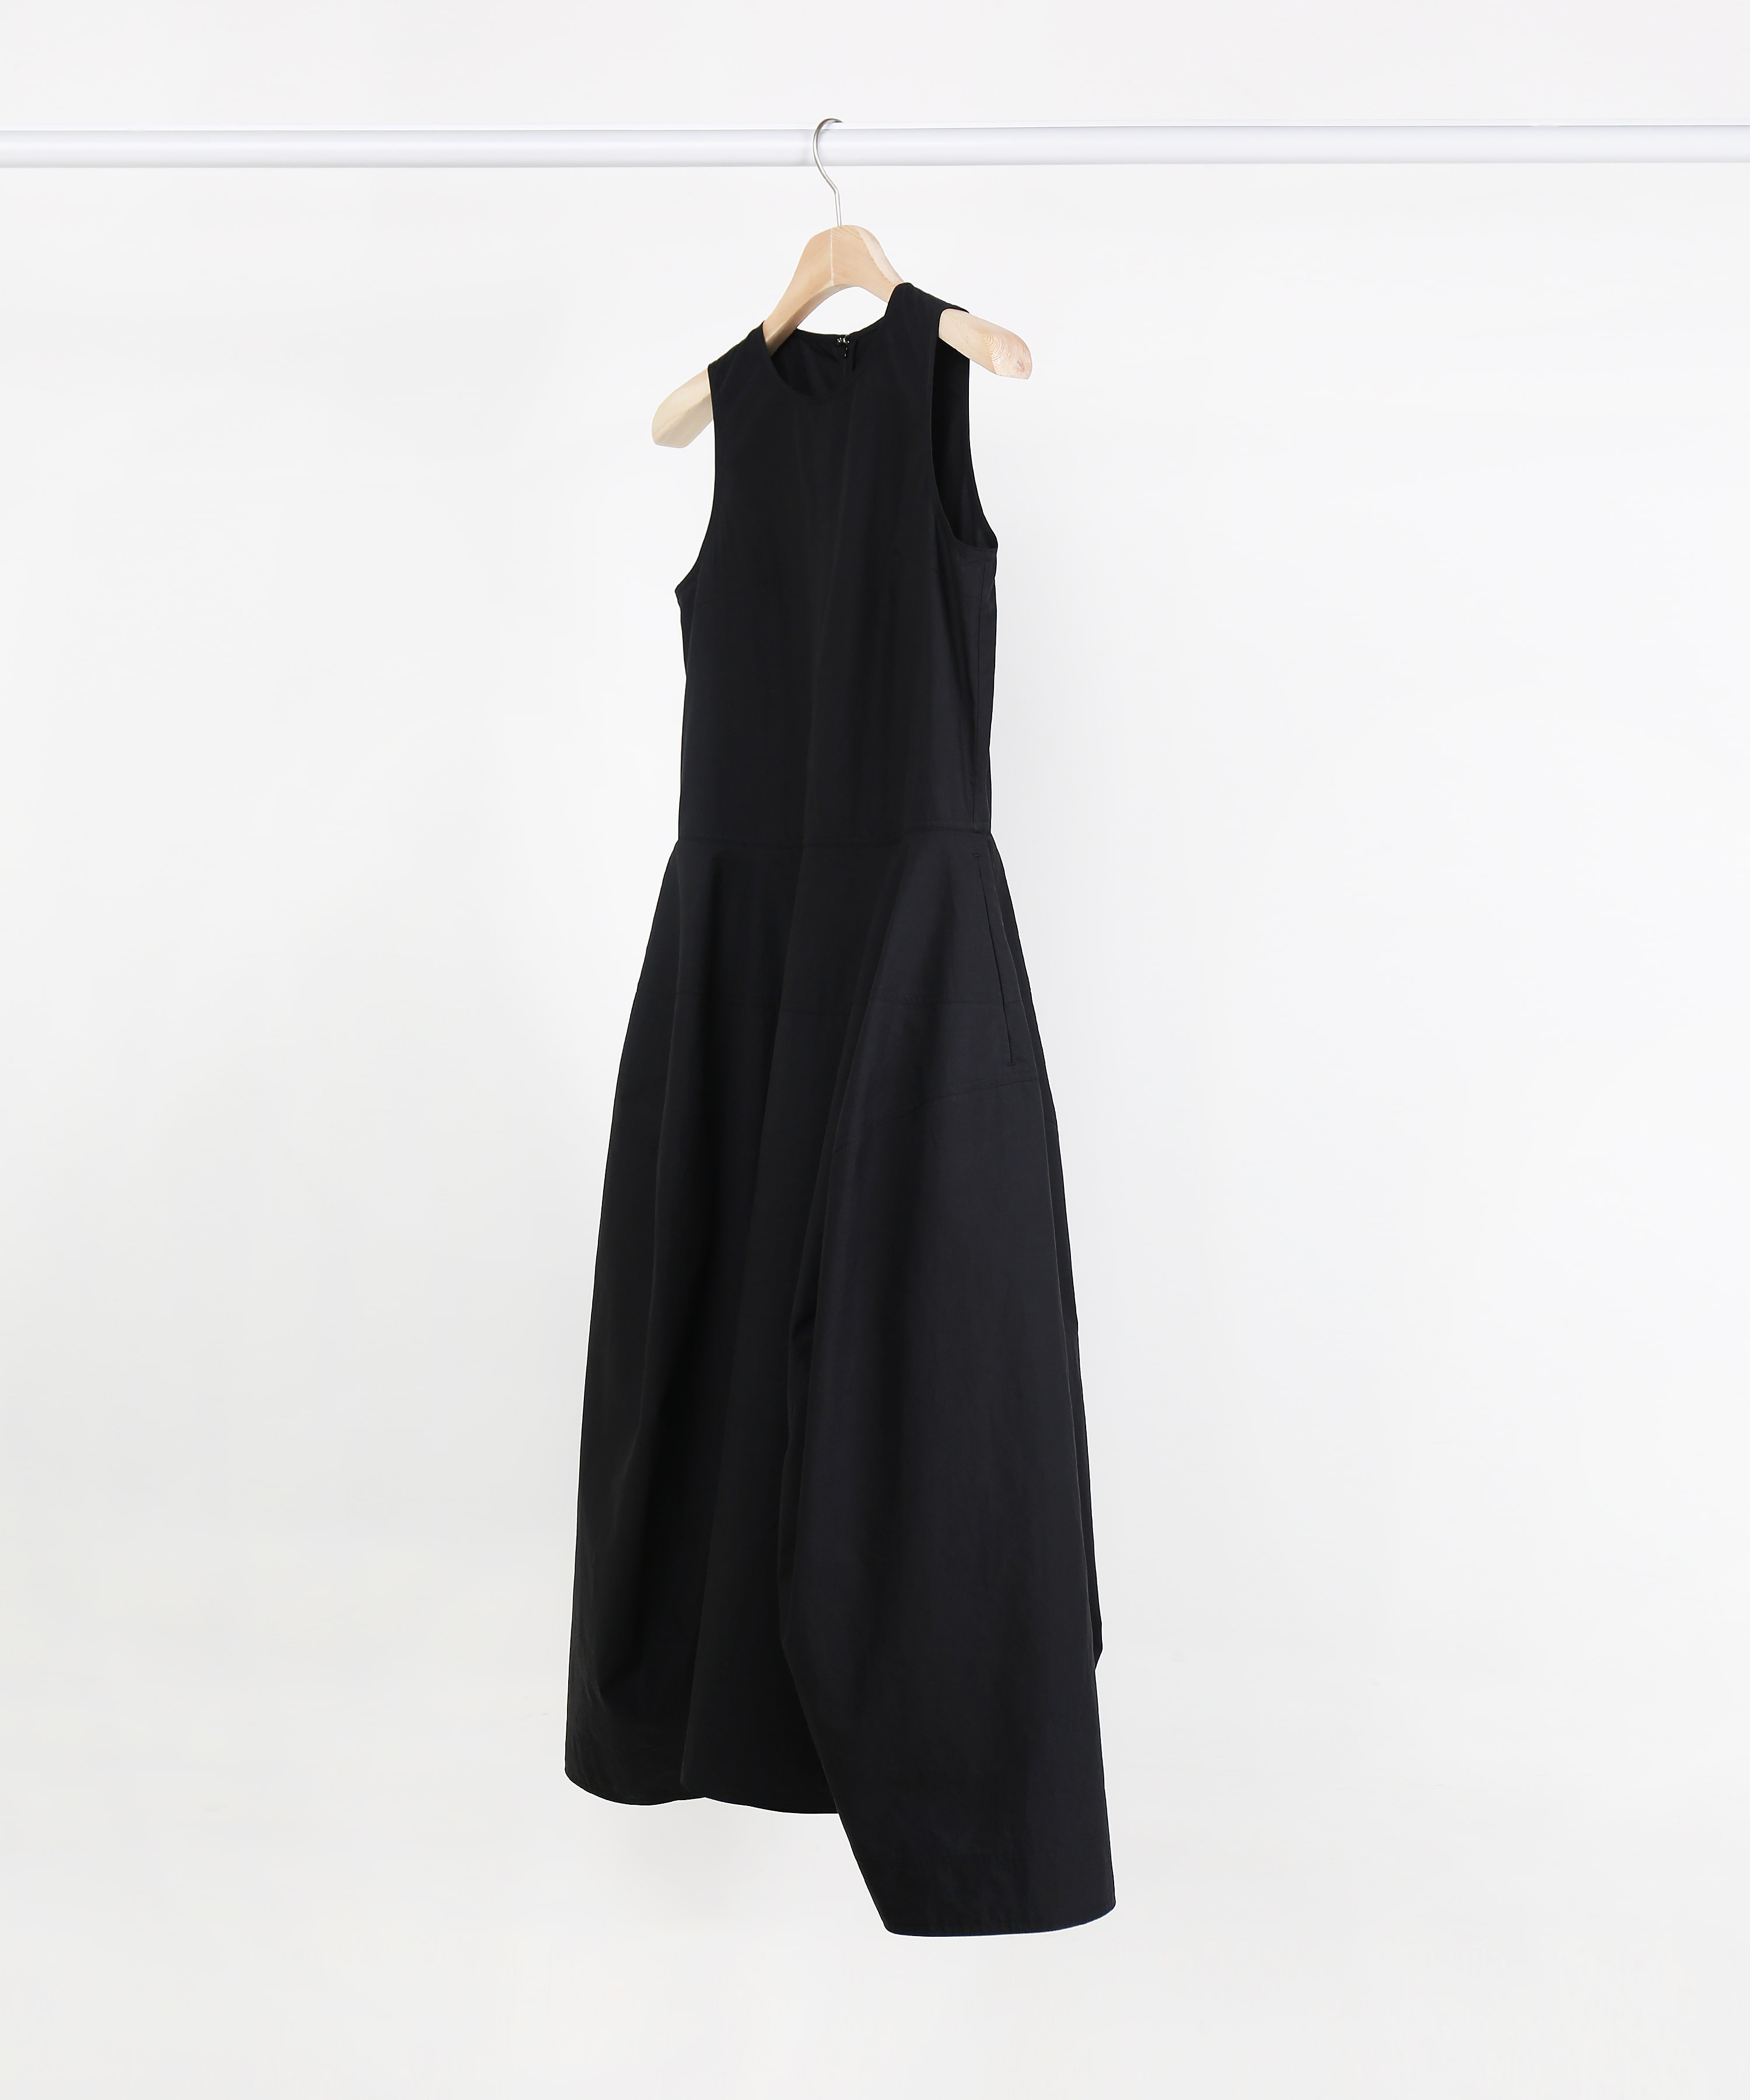 BLACK FLARING COTTON SLEEVELESS LONG DRESS